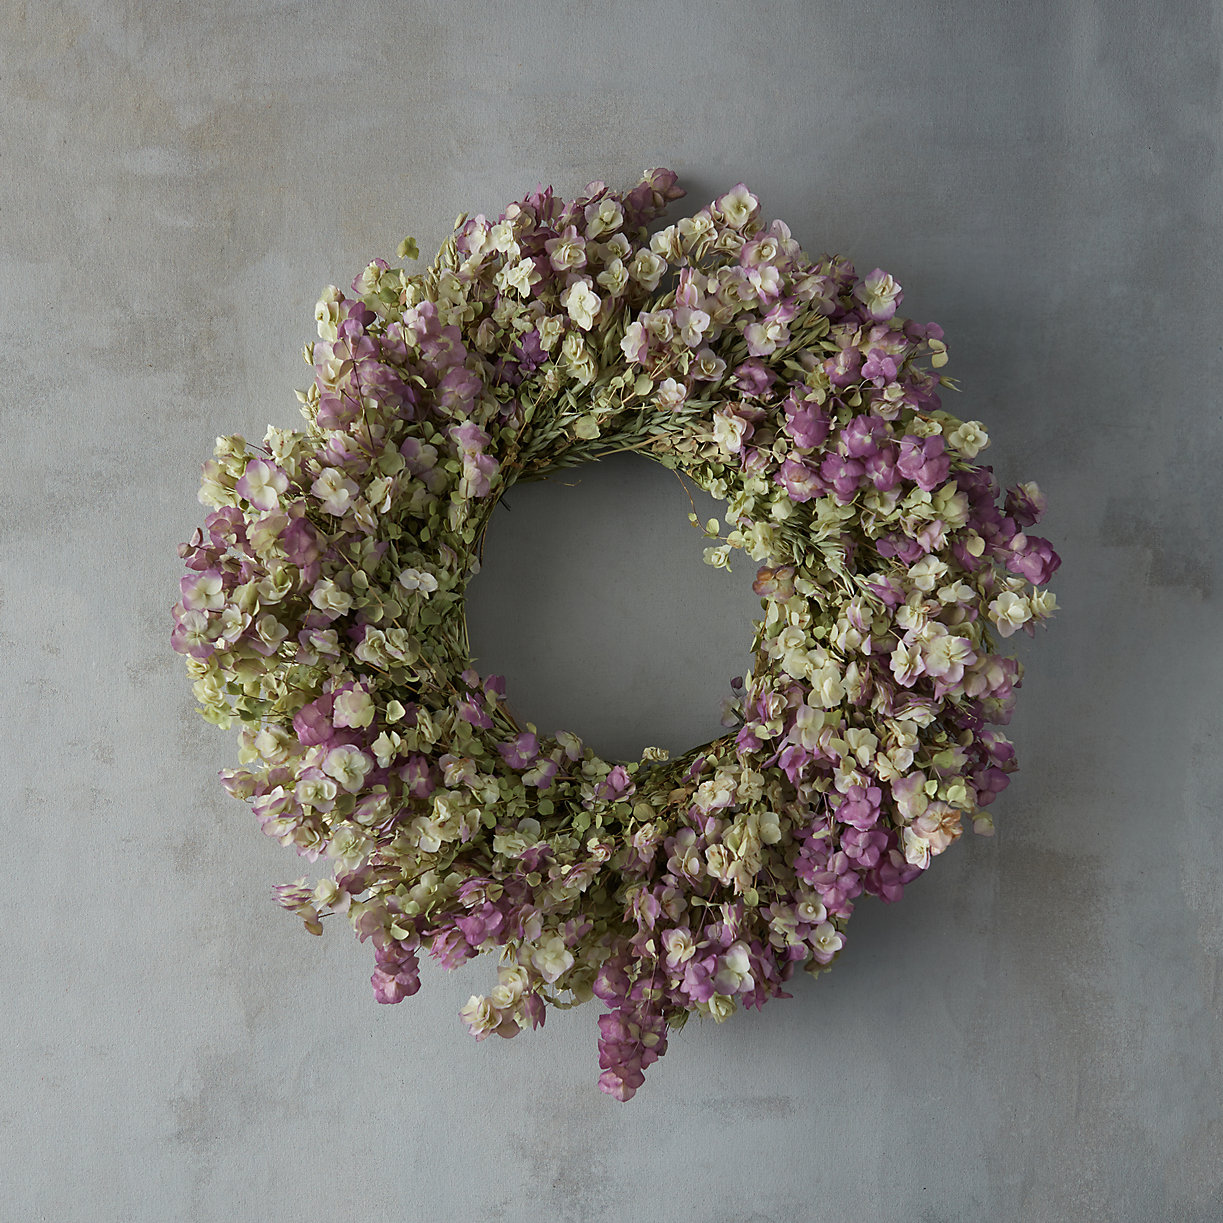 Dried Flowers, Oregano and Lavender Wreath